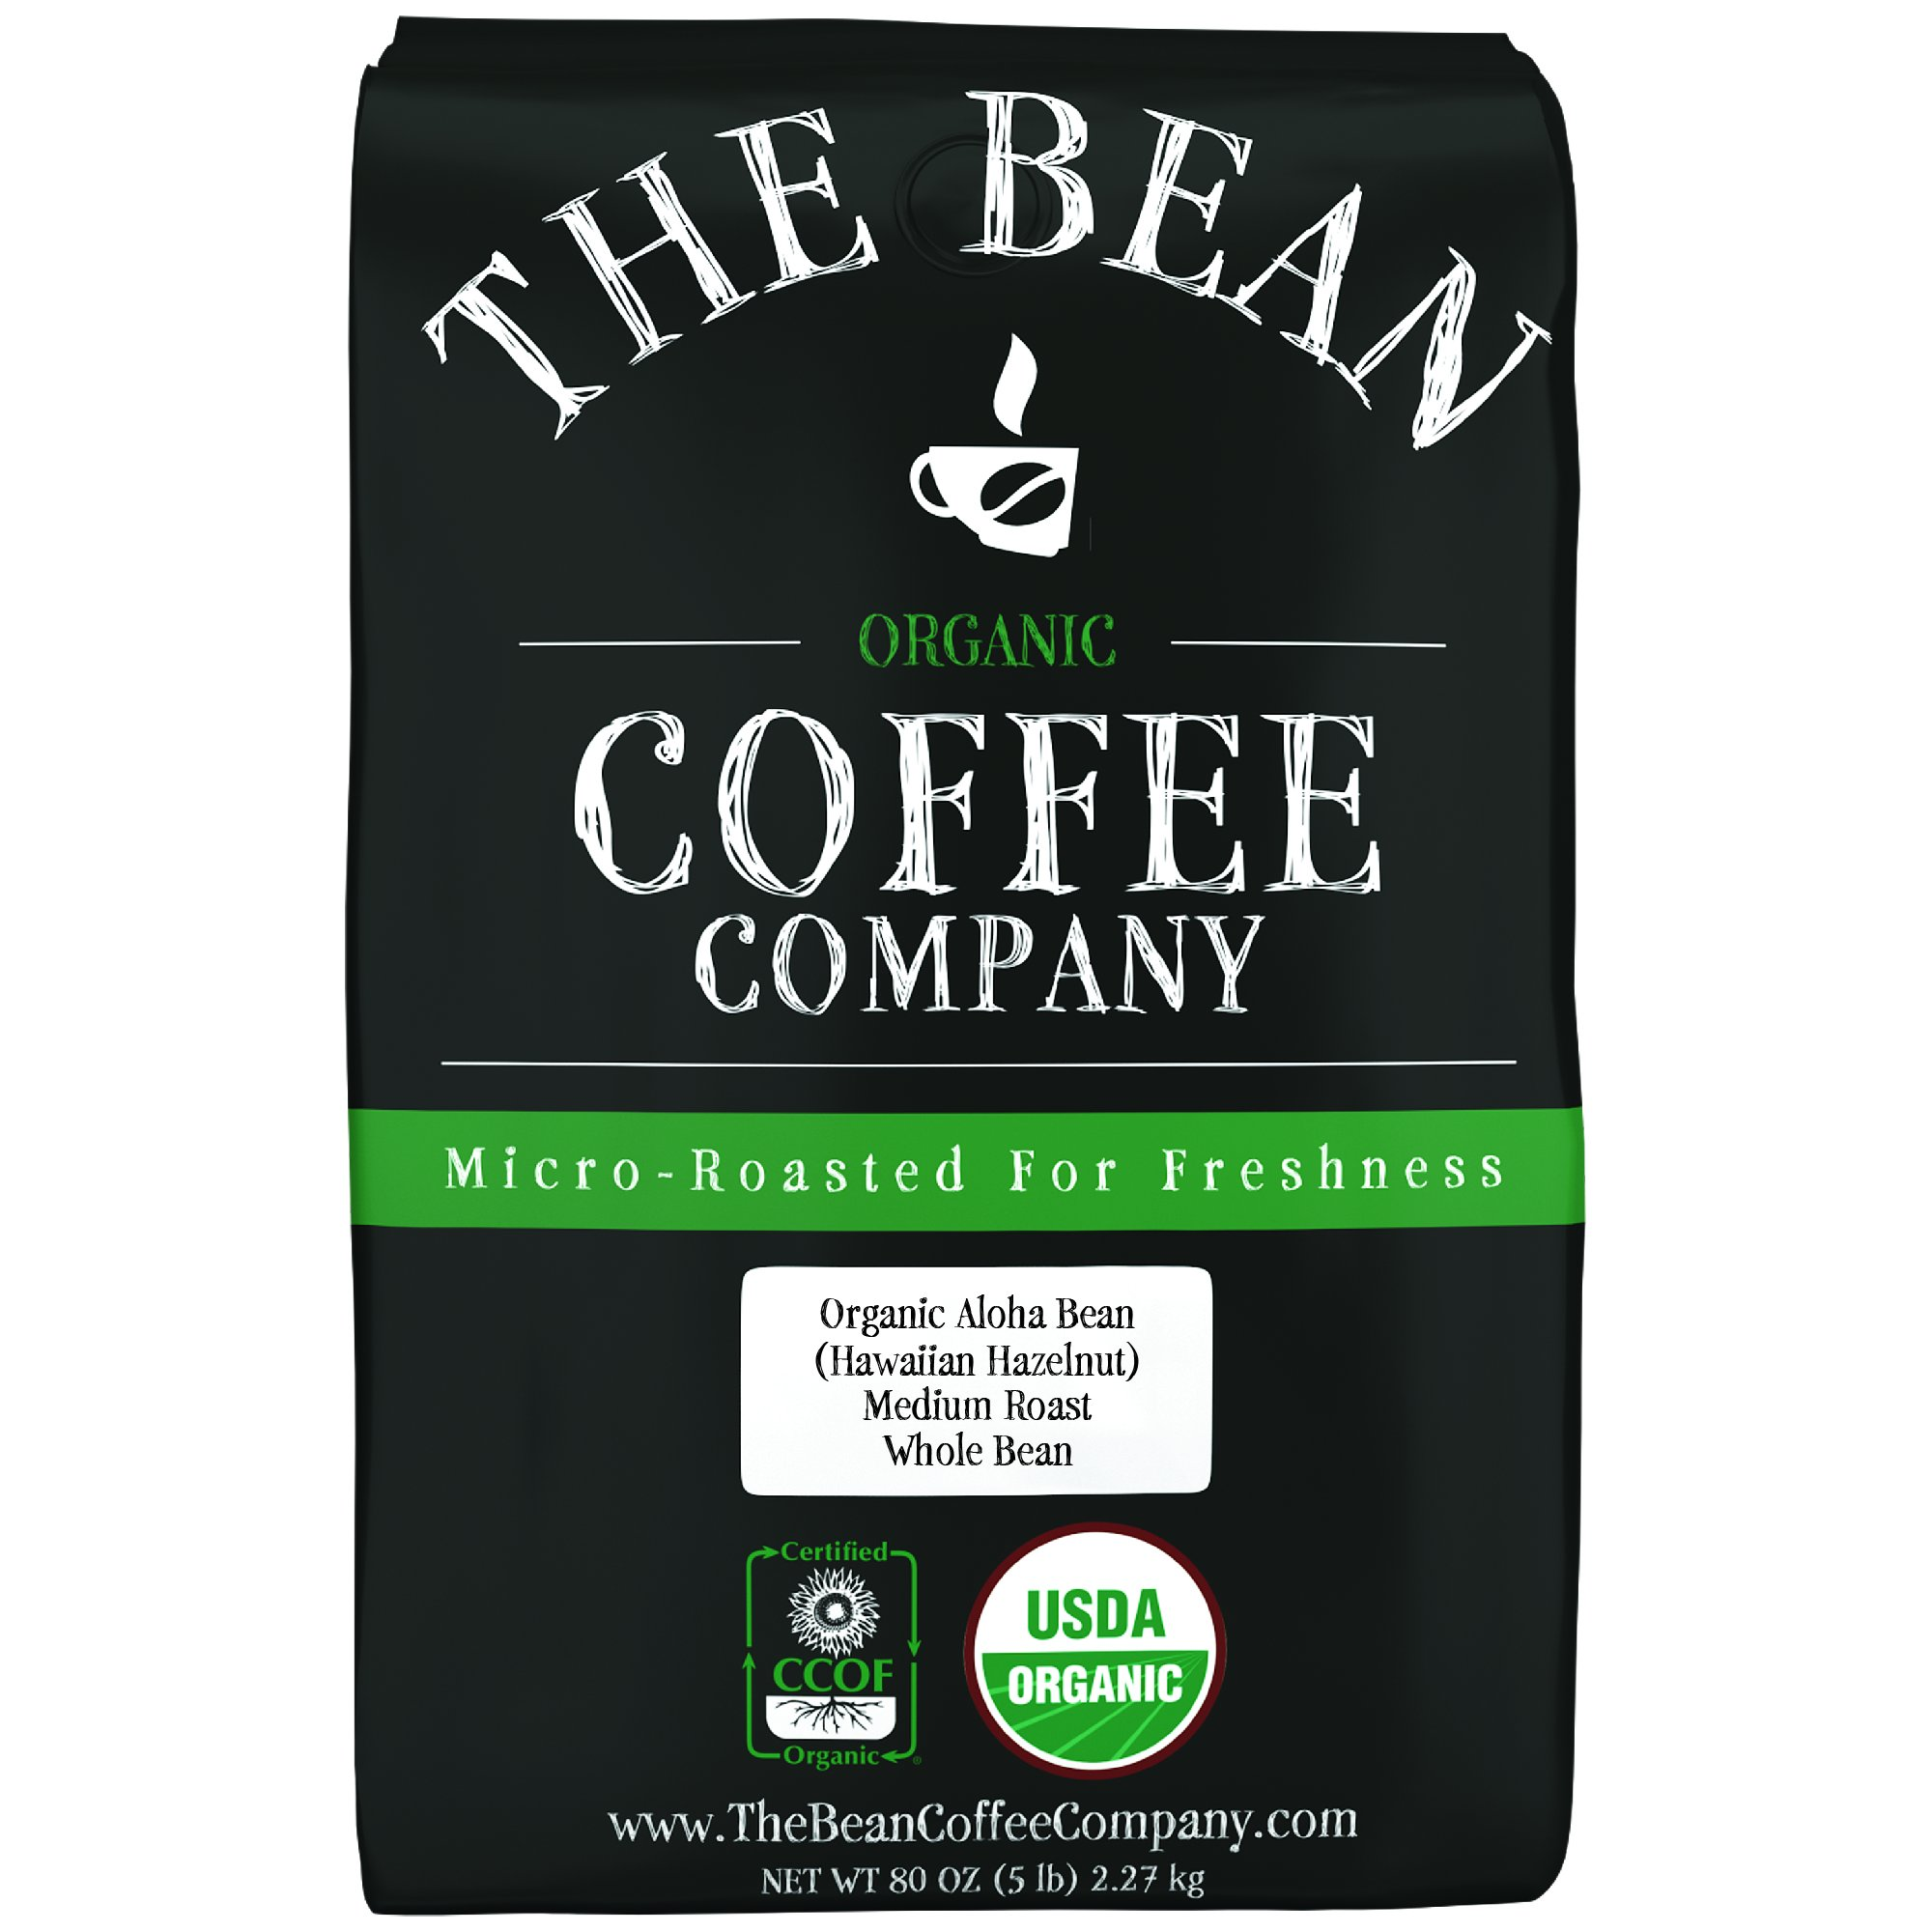 The Bean Coffee Company Organic Aloha Bean (Hawaiian Hazelnut), Medium Roast, Whole Bean, 5-Pound Bag by The Bean Coffee Company